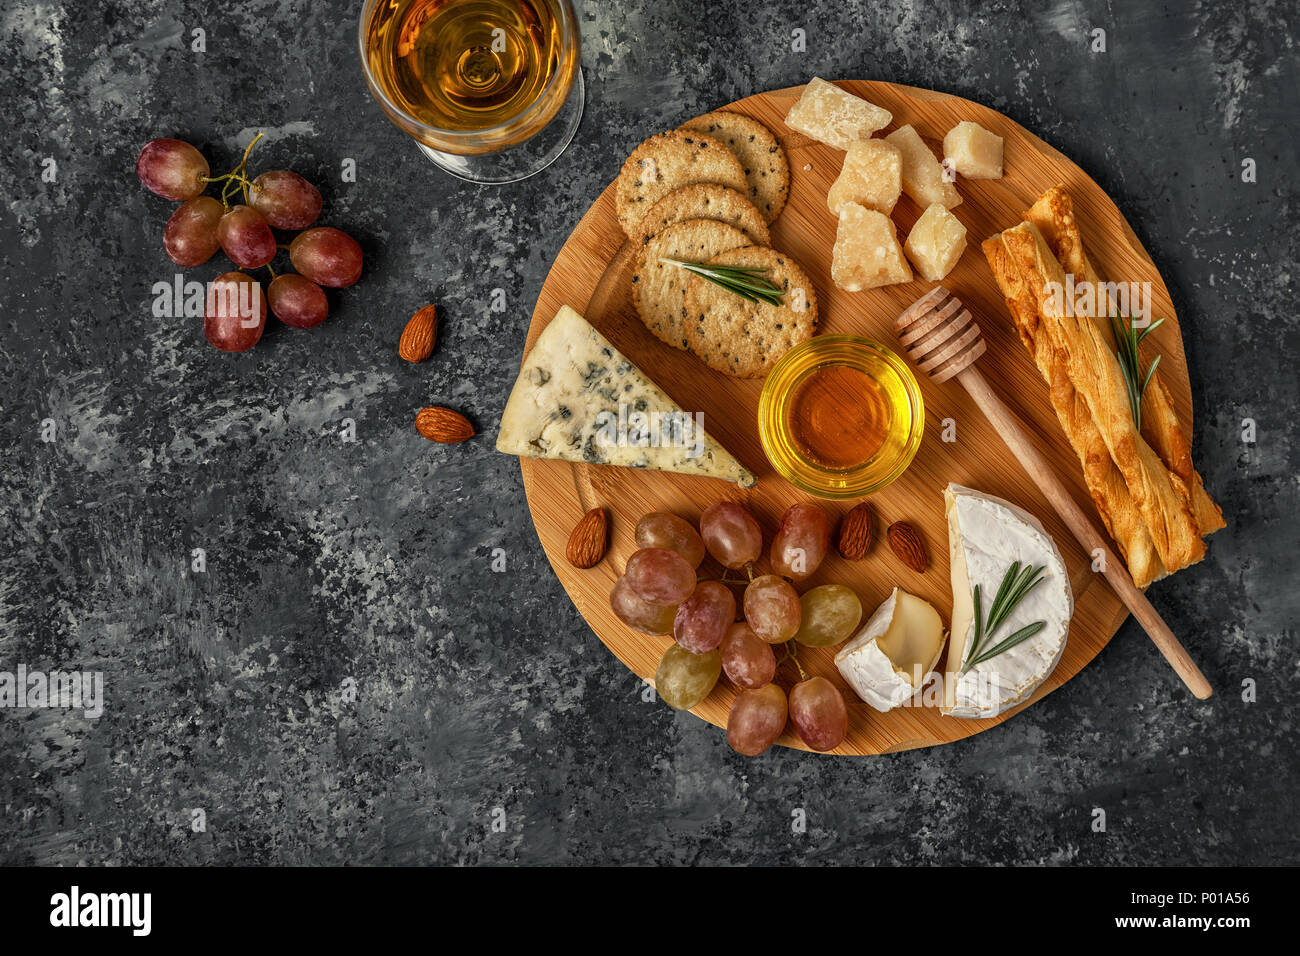 Assortment of cheese with wine, honey, nuts and grape on a cutting board, top view. - Stock Image